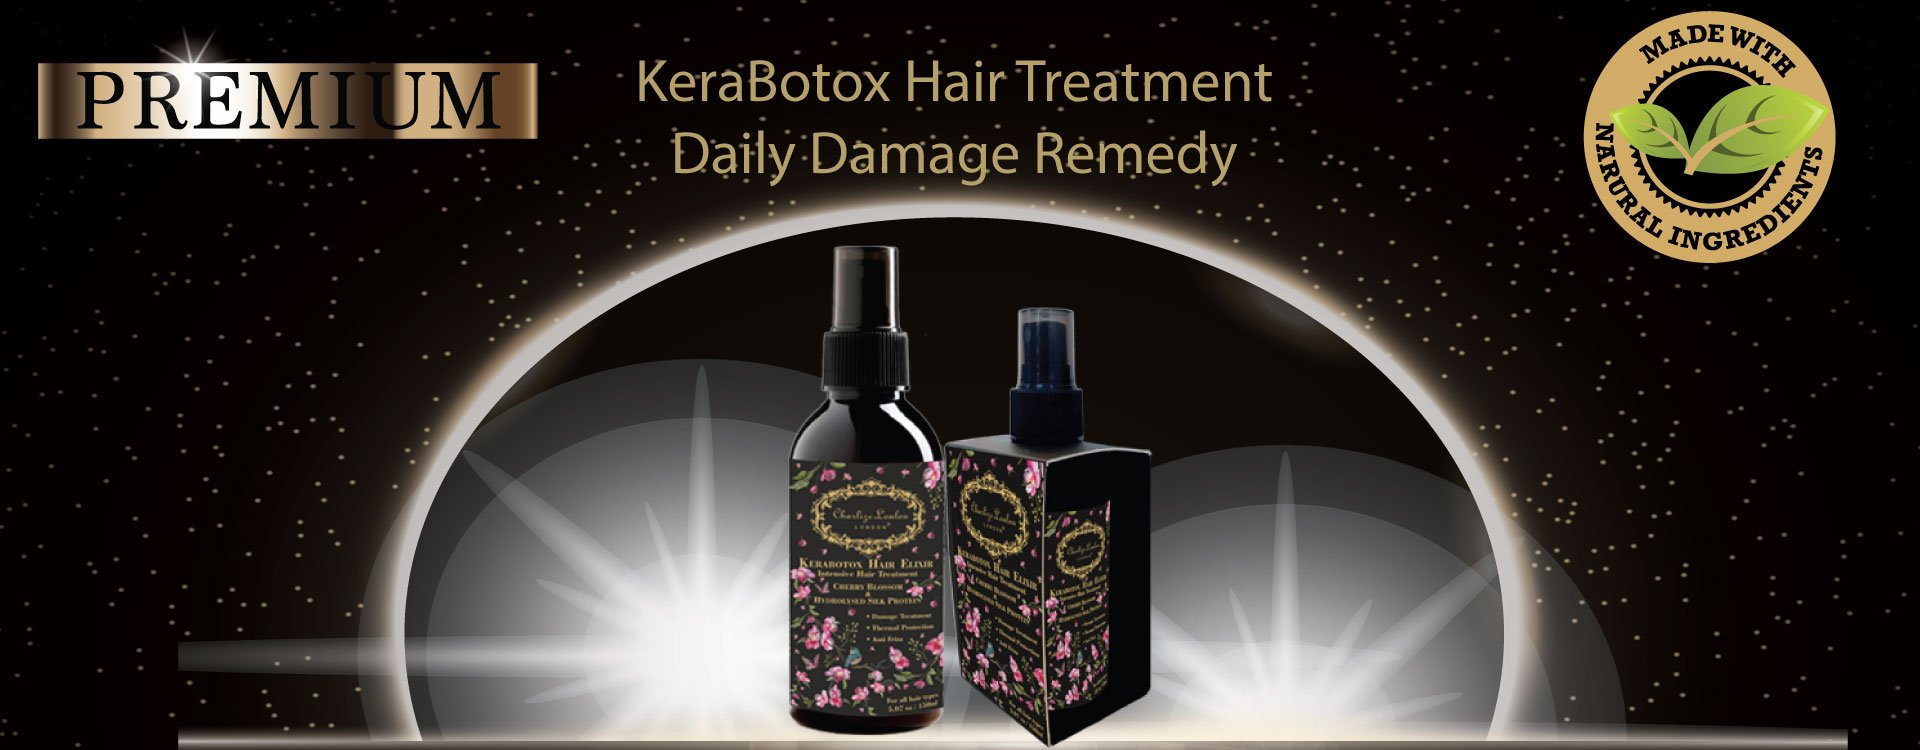 KeraBotox Hair Treatment Daily Damage Remedy can be used on the scalp to help prevent and remedy hair loss and it is effective at this for so many reasons.  How to Use Castor Oil Treatments on Hair KeraBotox Hair Elixir can be very beneficial for hair growth if used correctly. Small amounts of intensive elixir can be used for an all-over treatment. Like many things in life, more is not always better, The additional elixir usage are completely optional will not cause any harm.